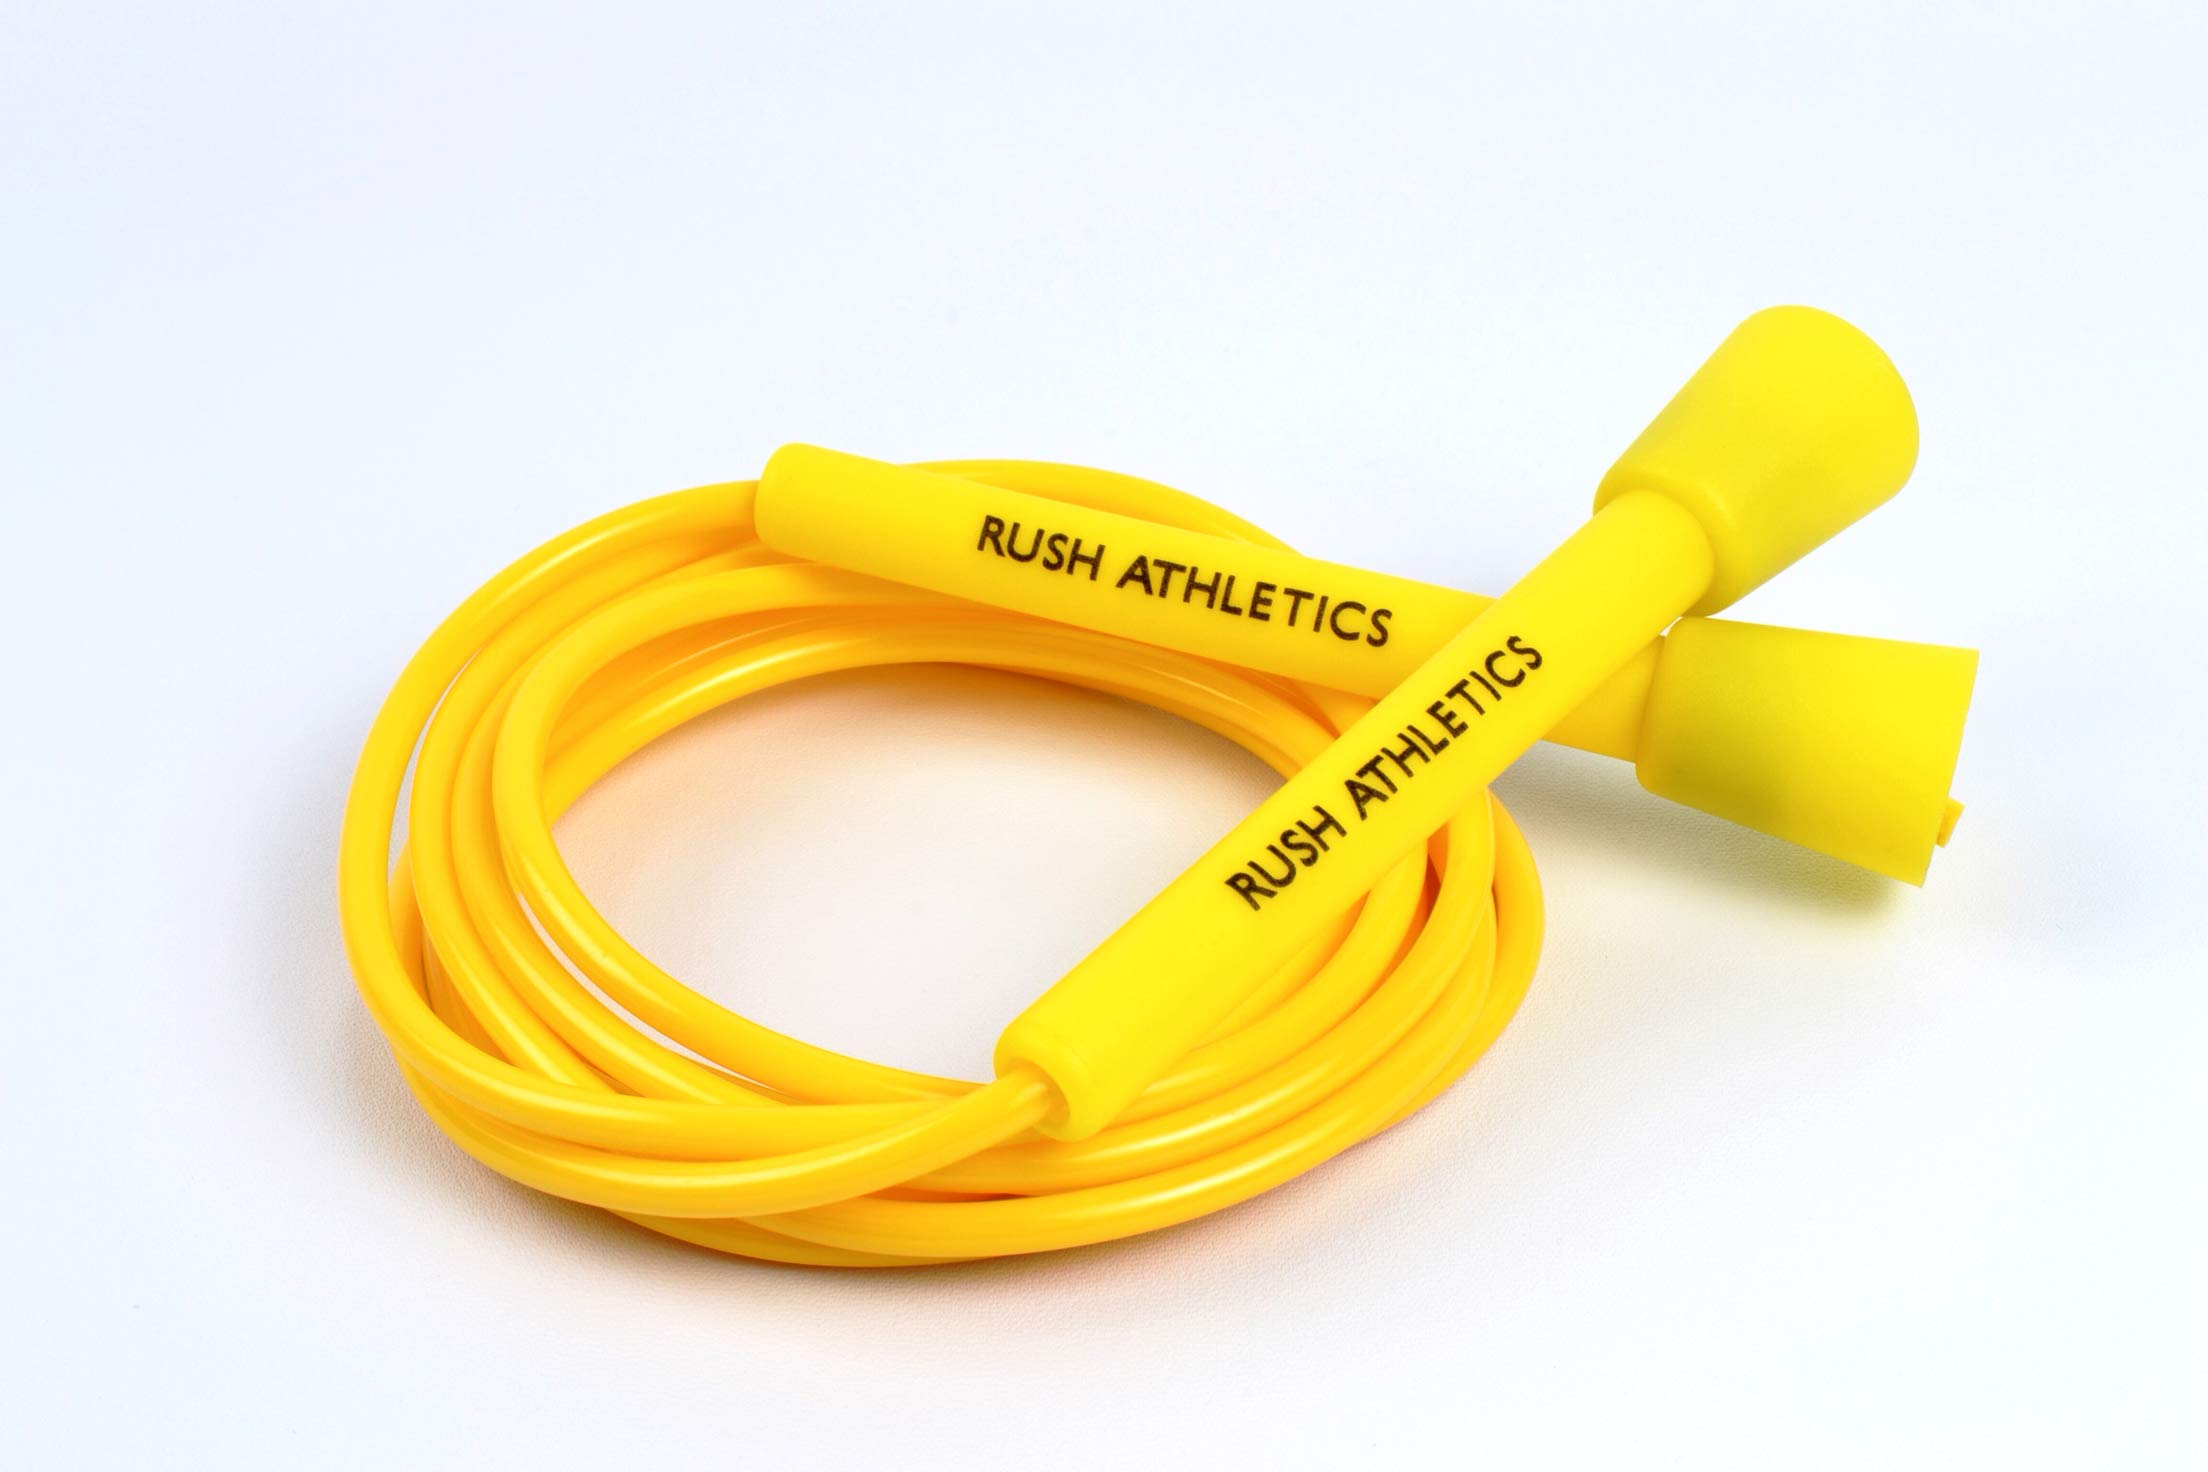 RUSH ATHLETICS Speed Rope Yellow - Skipping Rope, Best for Boxing MMA Cardio Fitness Training - Speed - Adjustable 11ft Jump Rope Sold